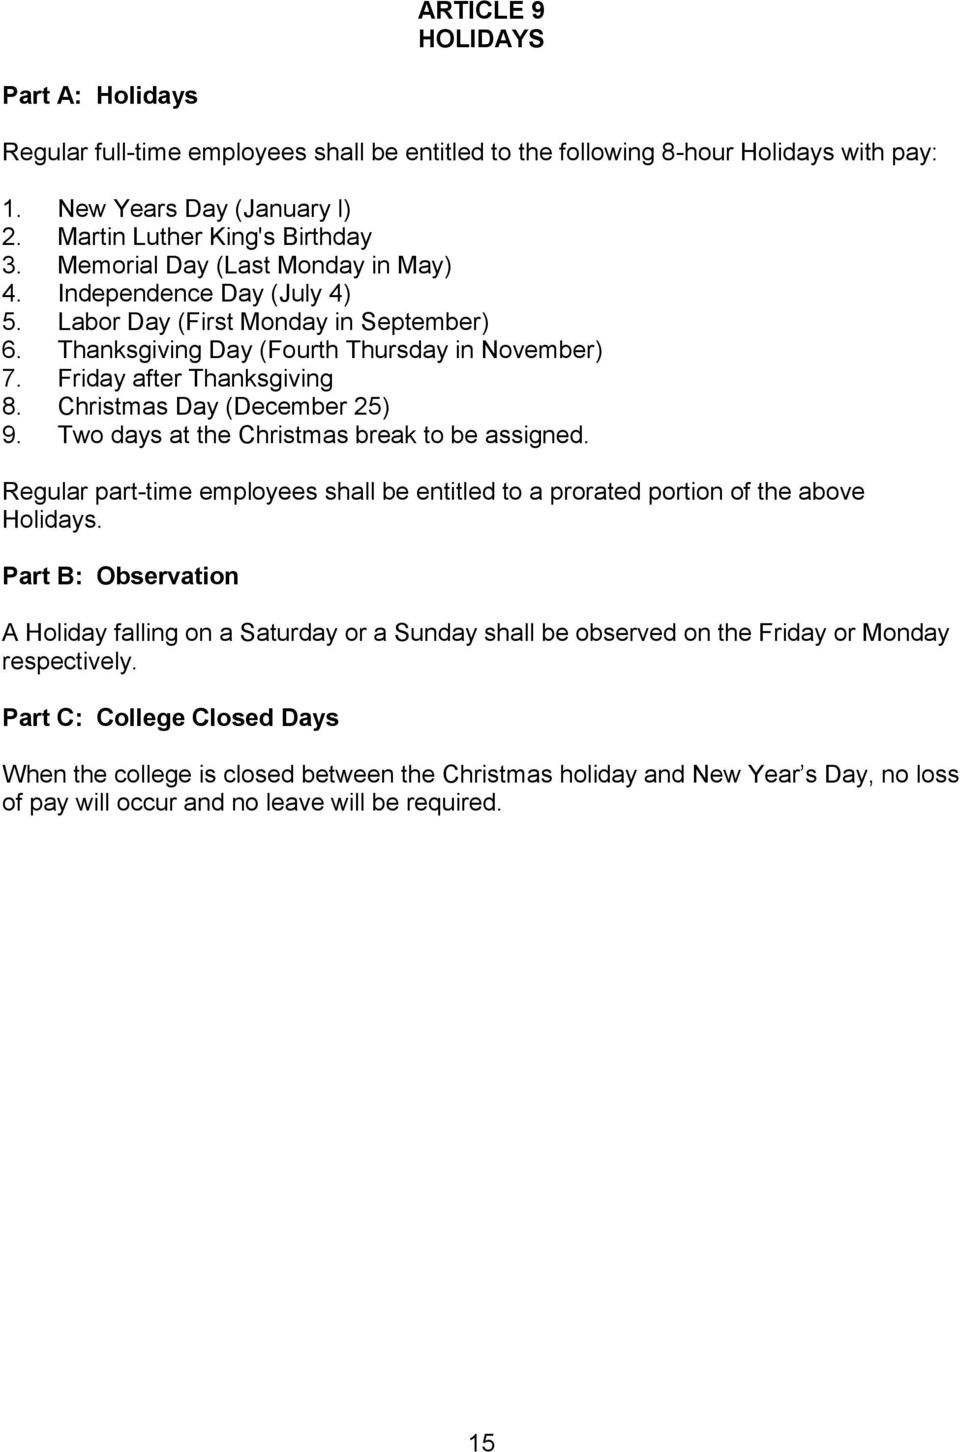 Christmas Day (December 25) 9. Two days at the Christmas break to be assigned. Regular part-time employees shall be entitled to a prorated portion of the above Holidays.